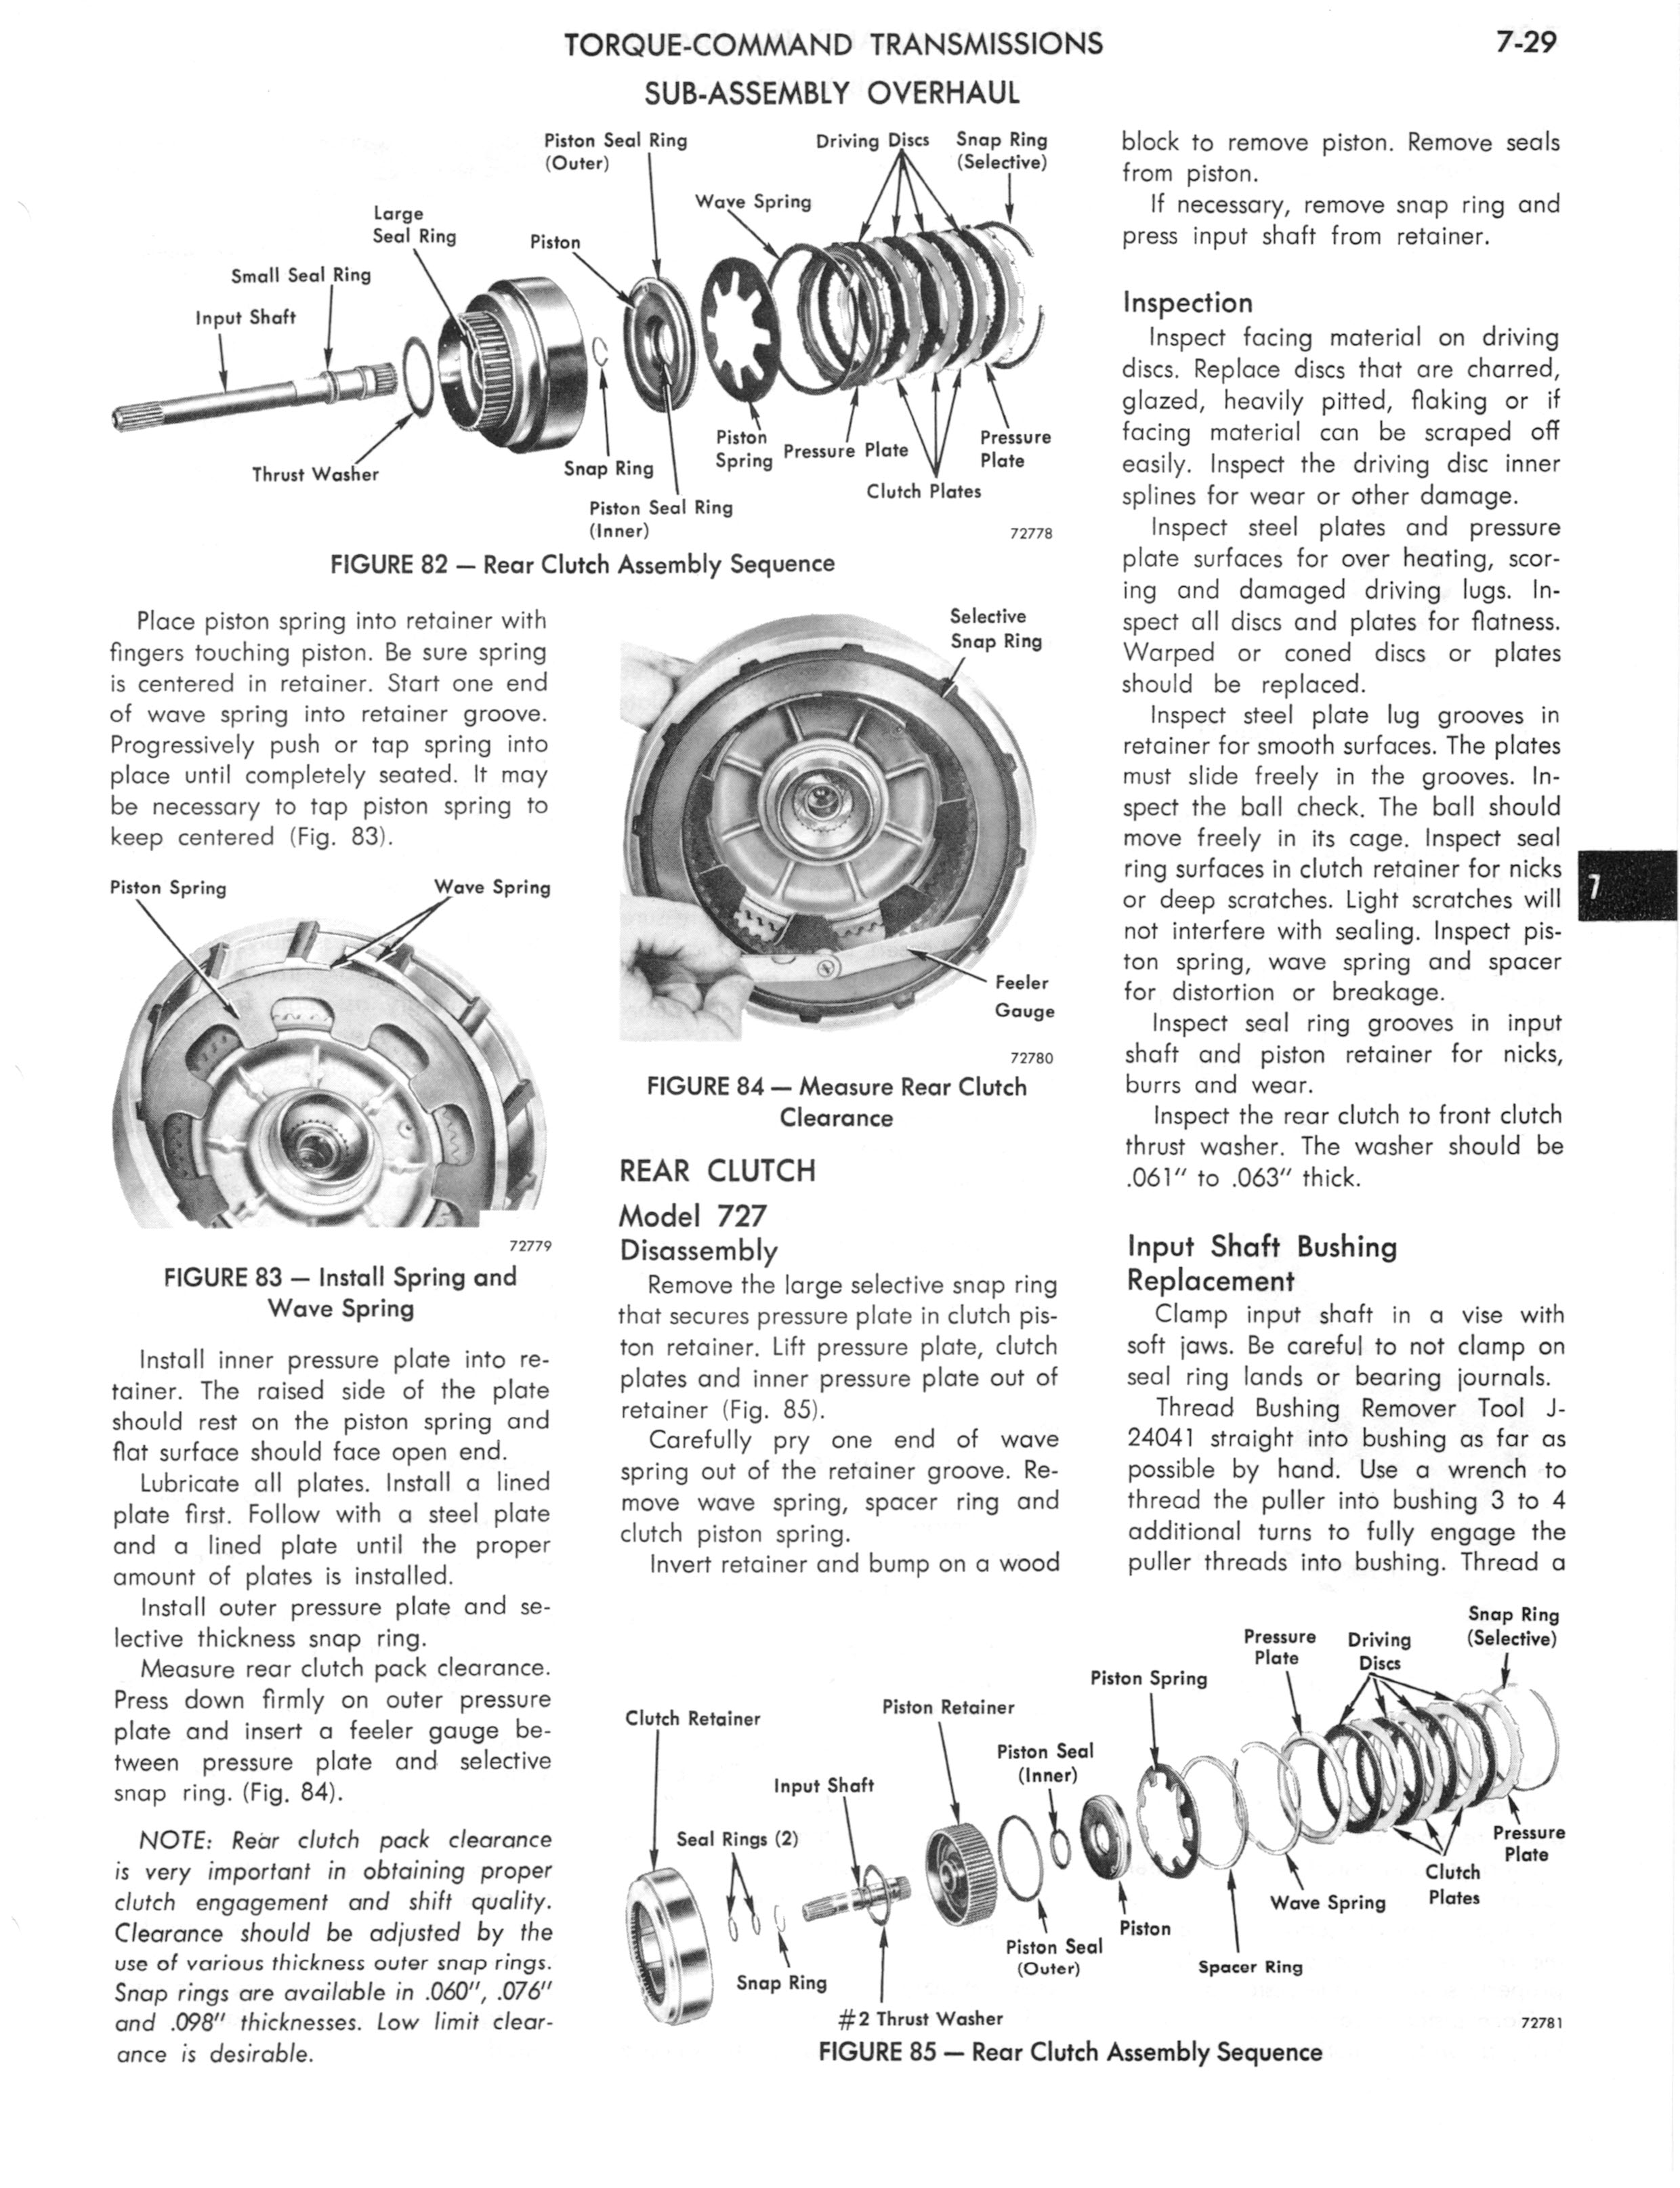 1973 AMC Technical Service Manual page 241 of 487